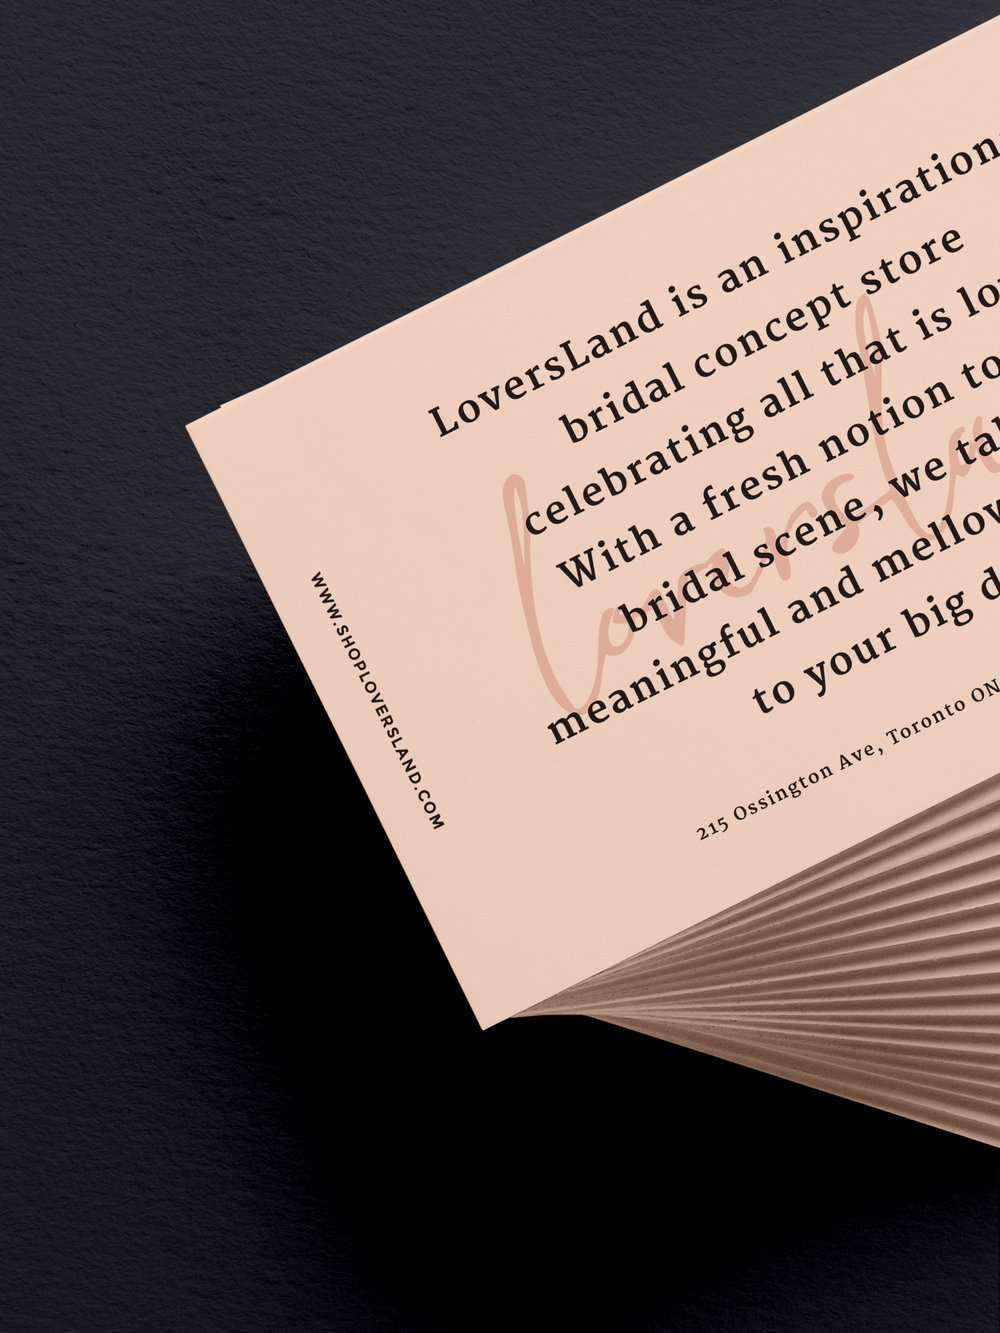 LoversLand_Toronto_Bridal_Store_Business_Cards.jpg